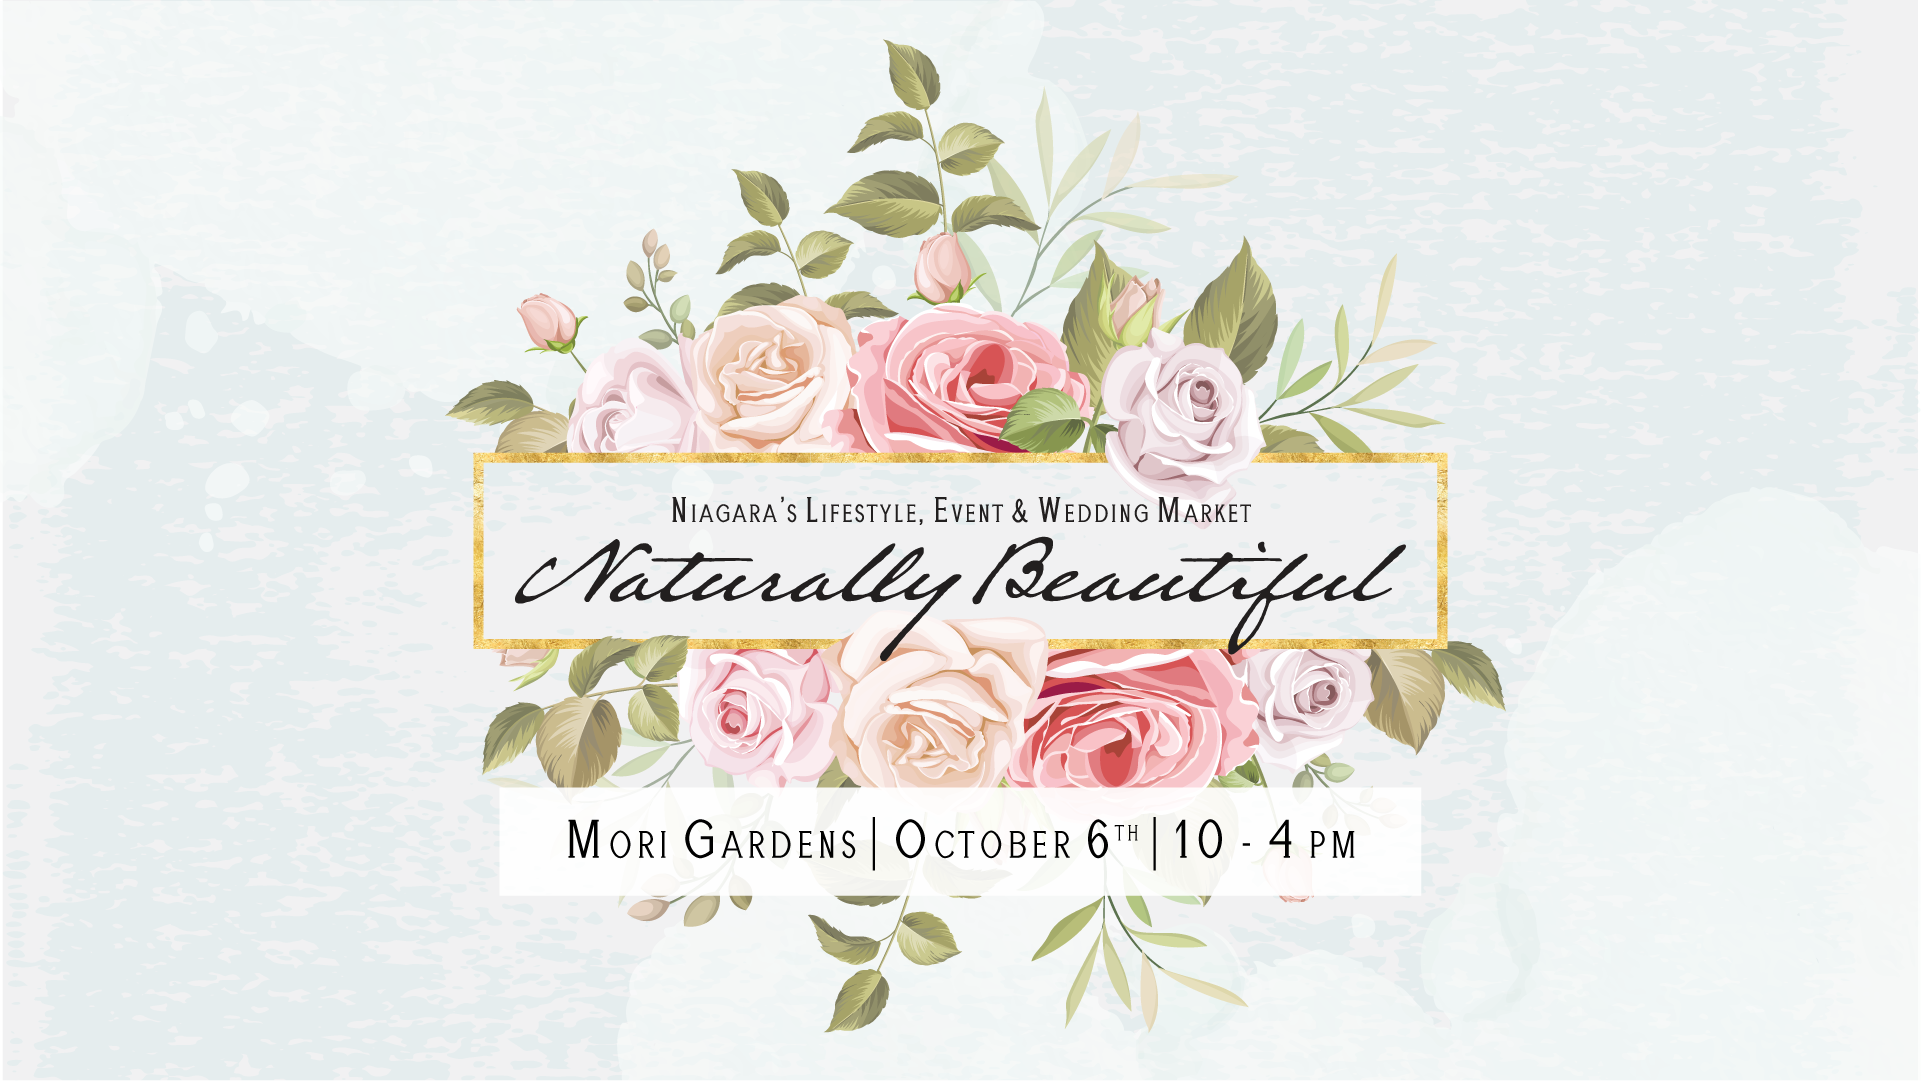 Naturally Beautiful ~ Lifestyle, Event & Wedding Market